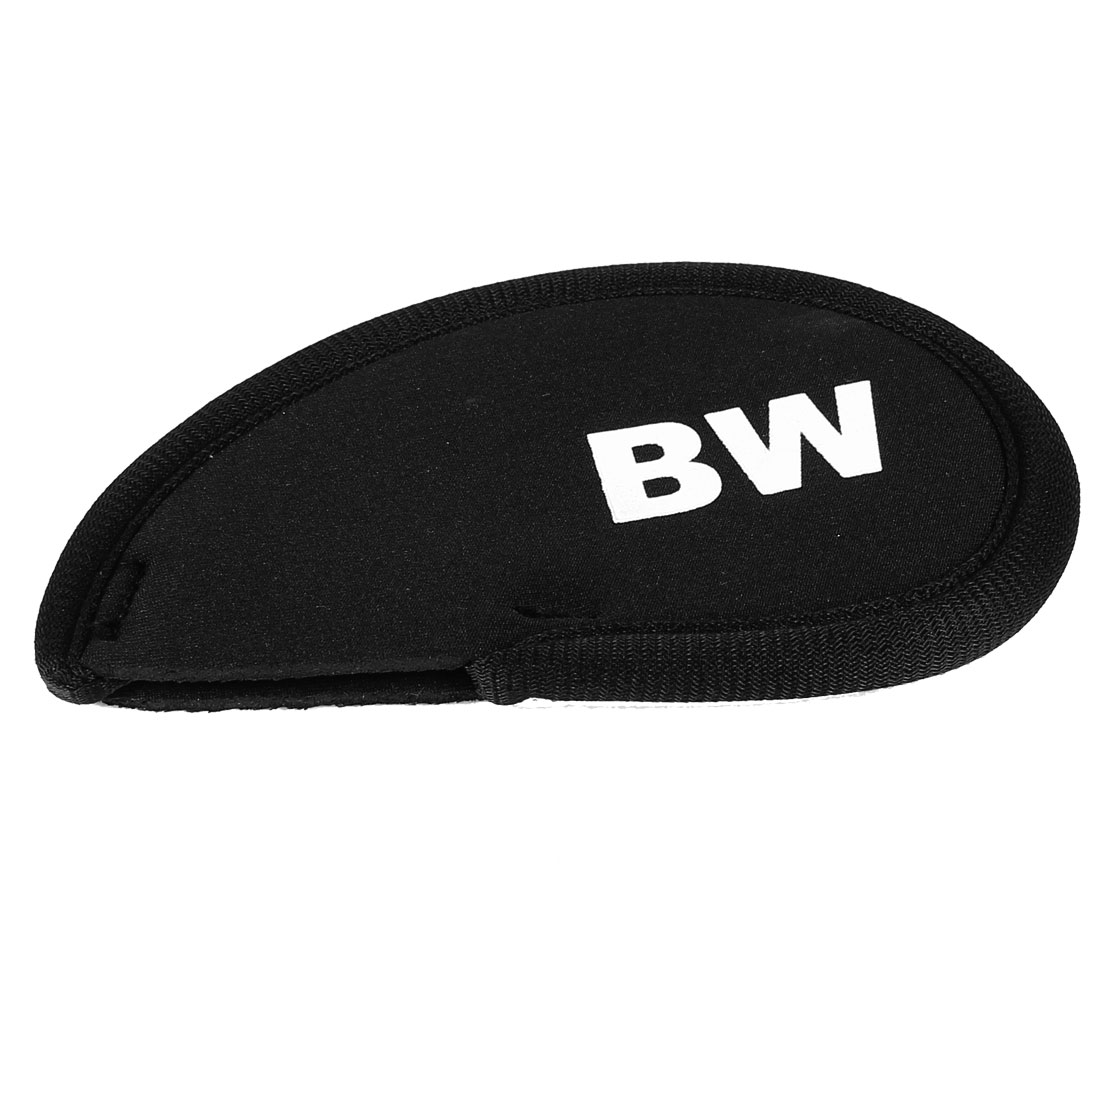 Black Neoprene Golf Club Head Cover BW GW Wedge Iron Protective Headcovers